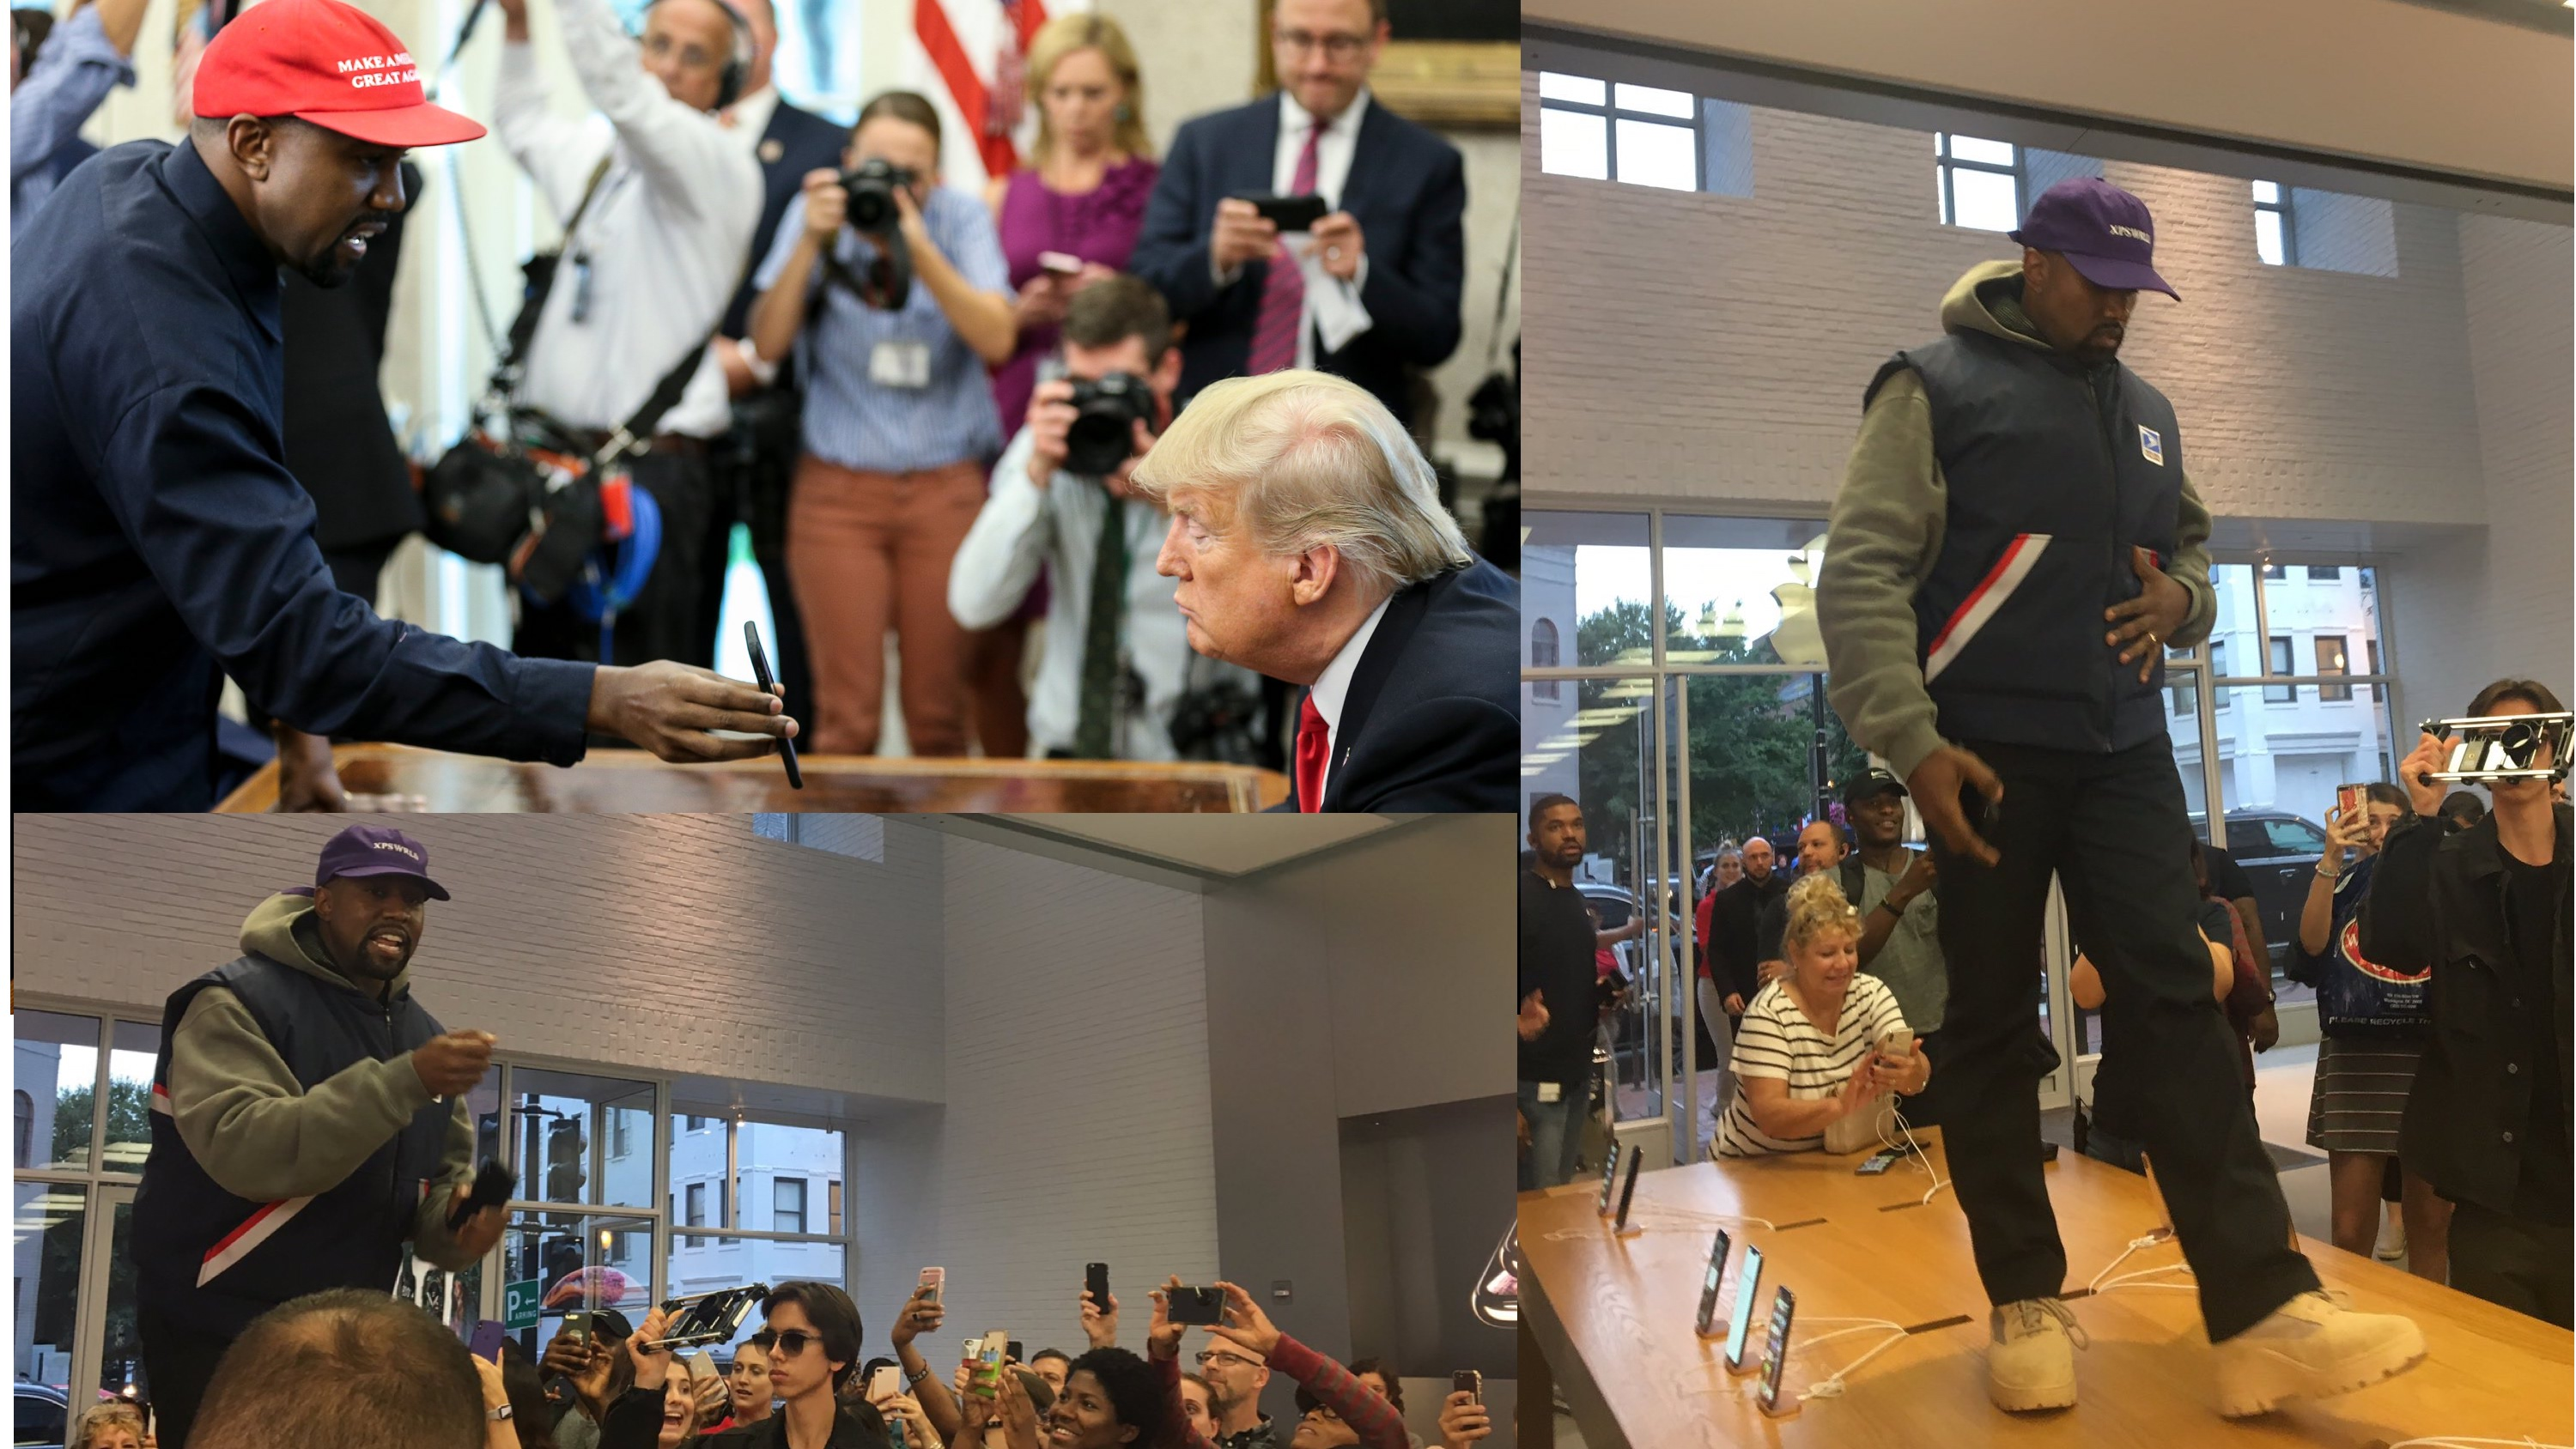 Kanye West pitches Trump on 'iPlane' built by Apple, delivers table-top Apple store 'keynote'